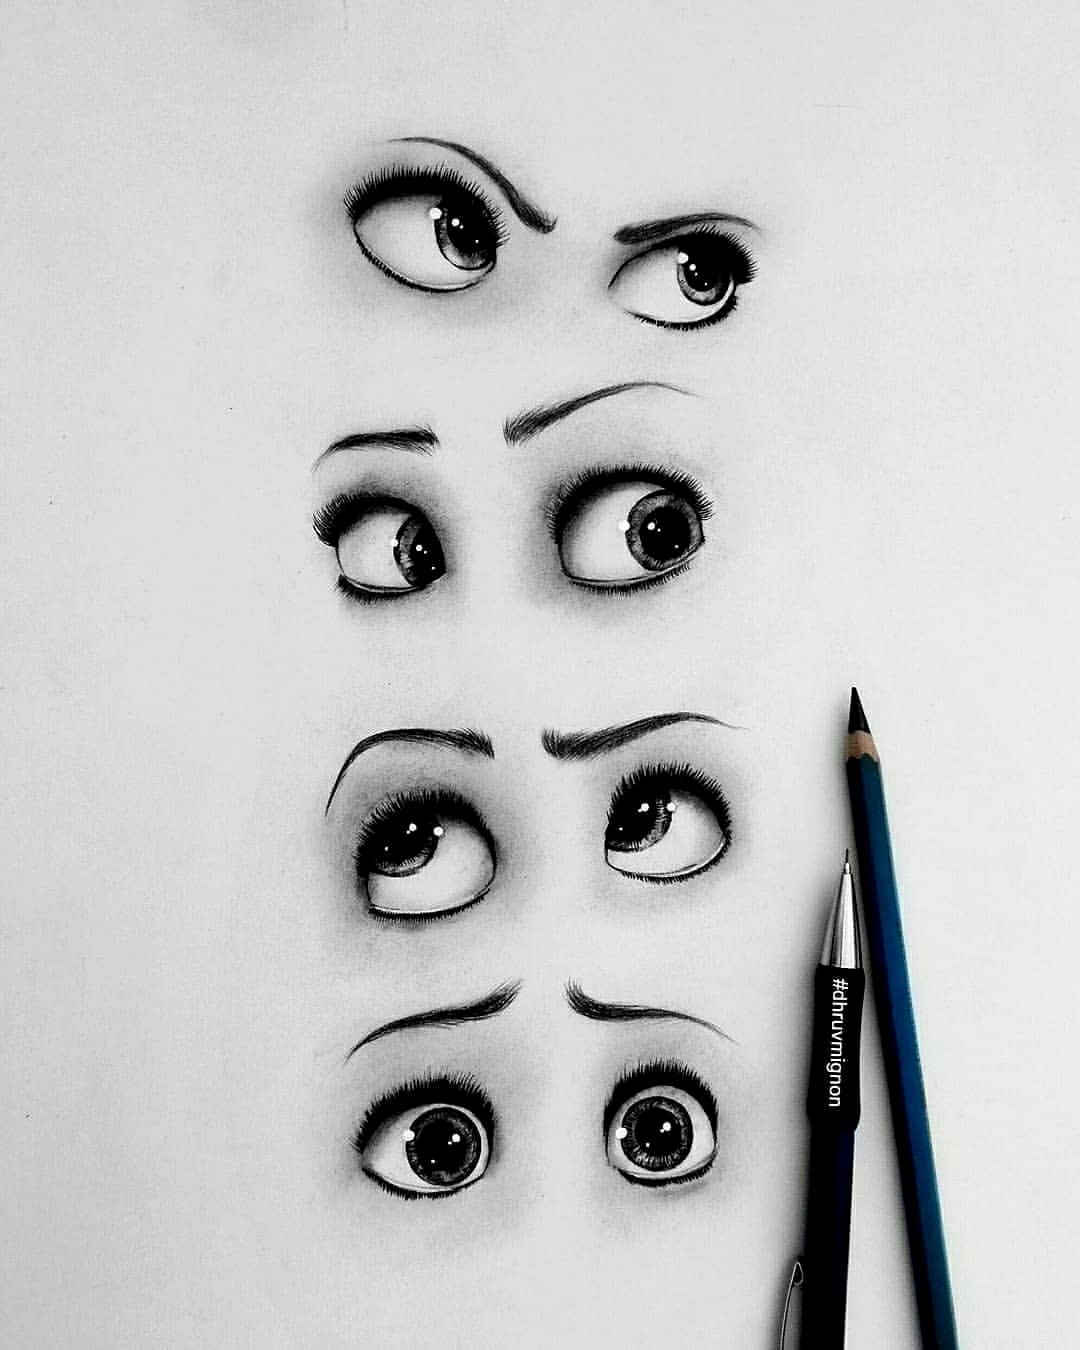 Only Eyes By Dhruvmignon Do You Want Immediate Feature